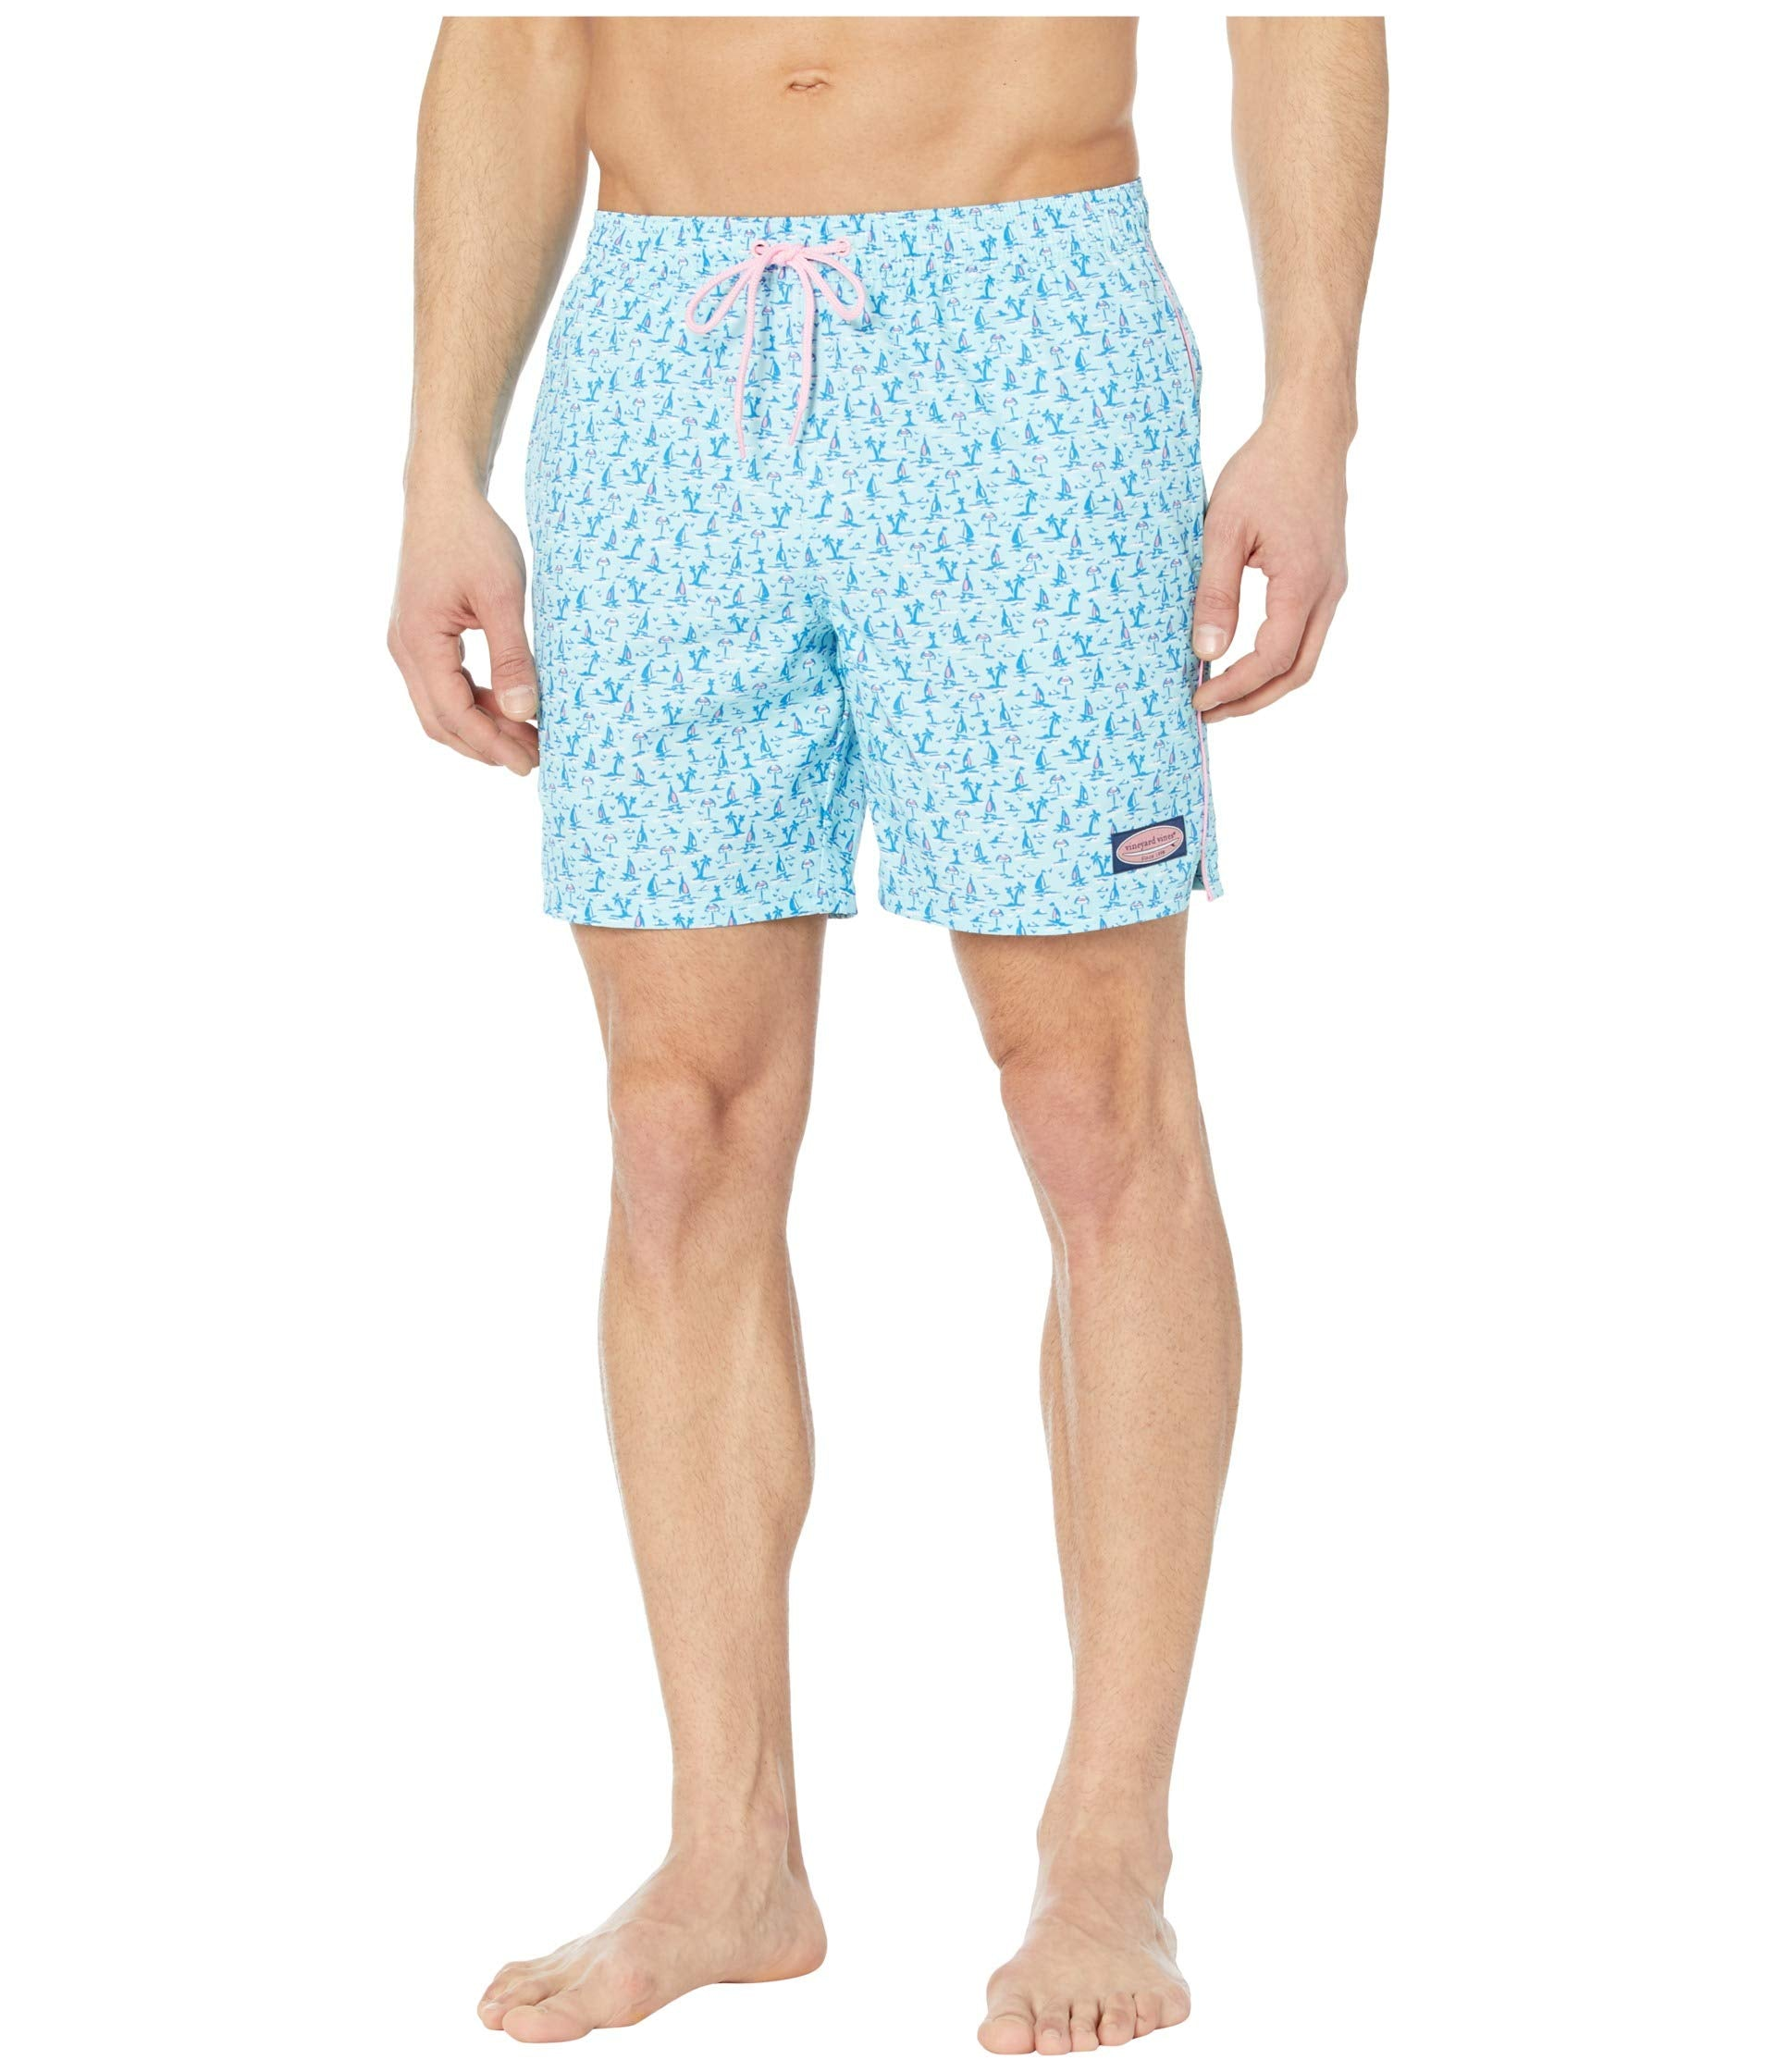 """Vineyard Vines 7"""" Printed Chappy Trunk is a Summer essential short for men. Shop Bennetts Clothing for a large selection of the latest men's fashions from Vineyard Vines."""